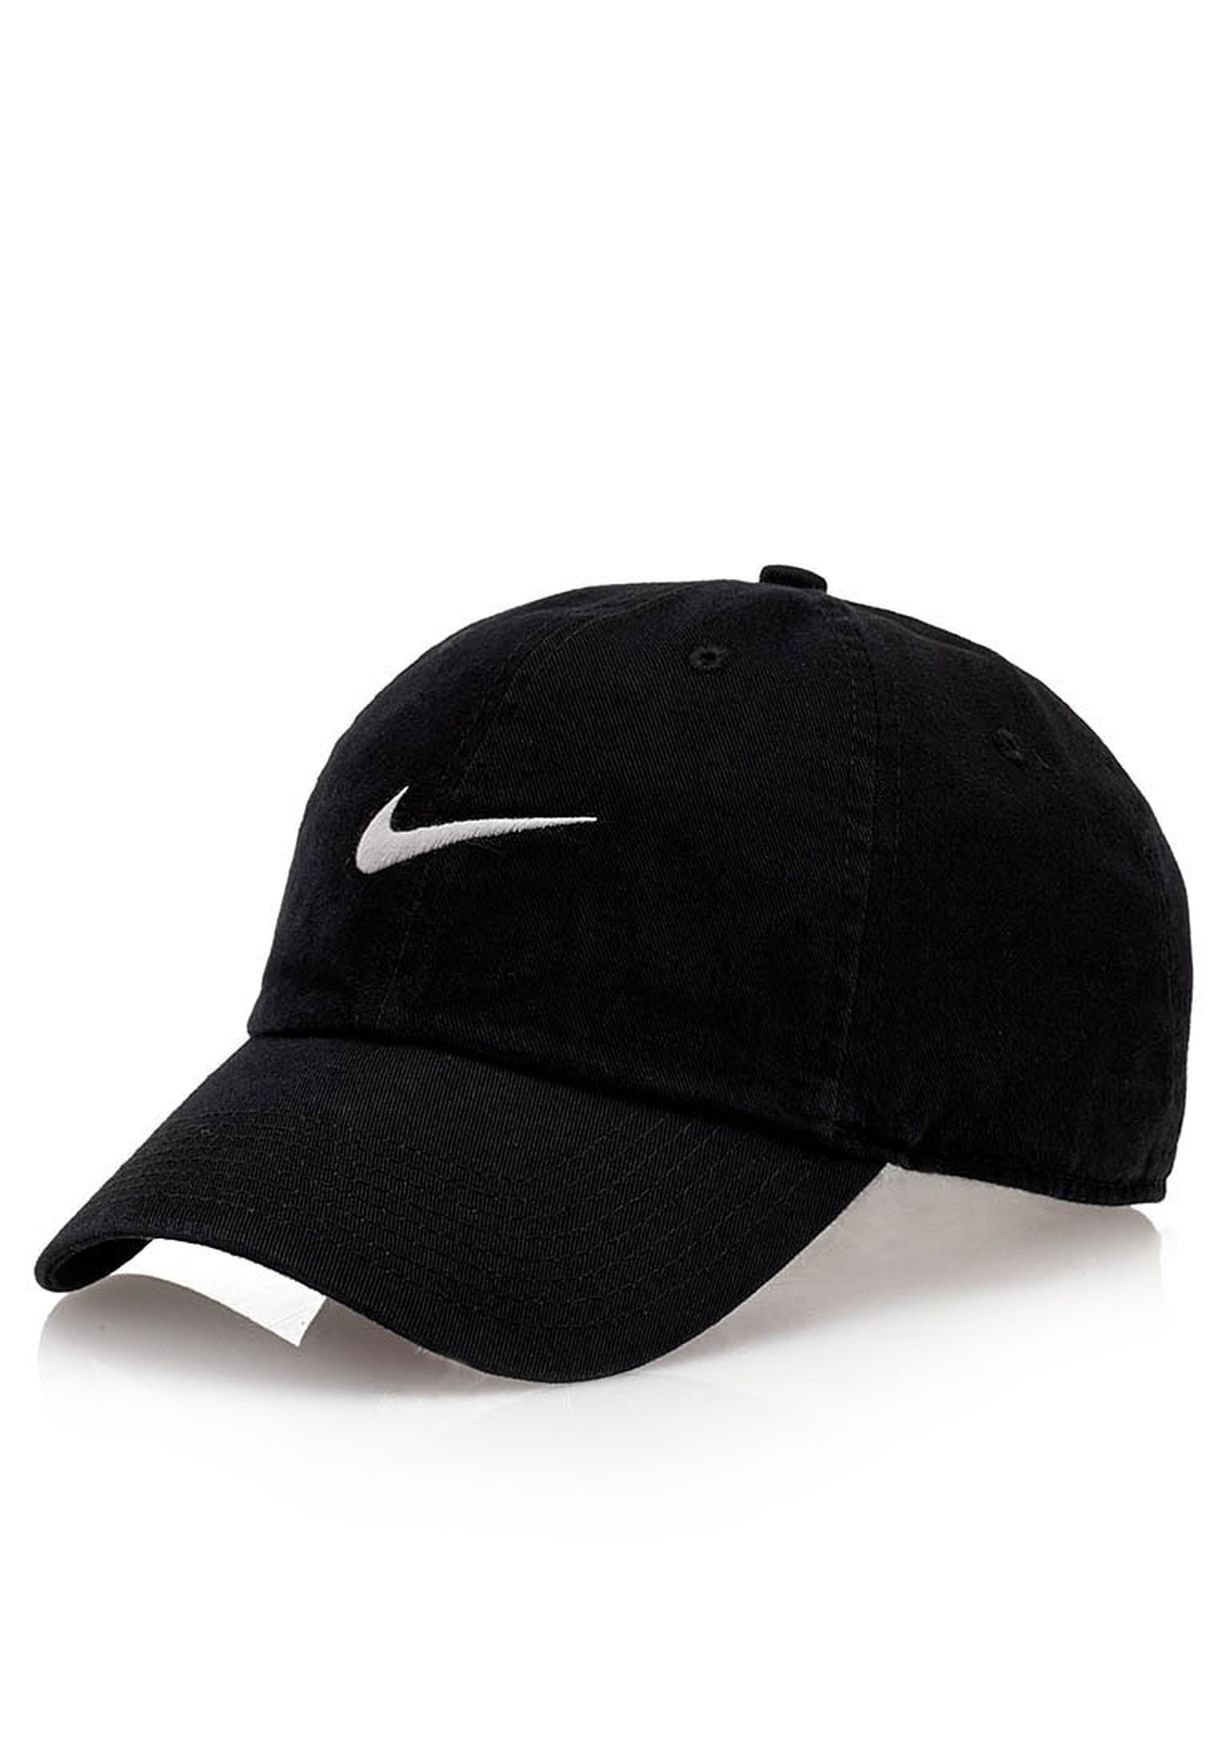 9c9e2e3cbed Shop Nike black Heritage Swoosh Cap 546126-010 for Men in UAE ...